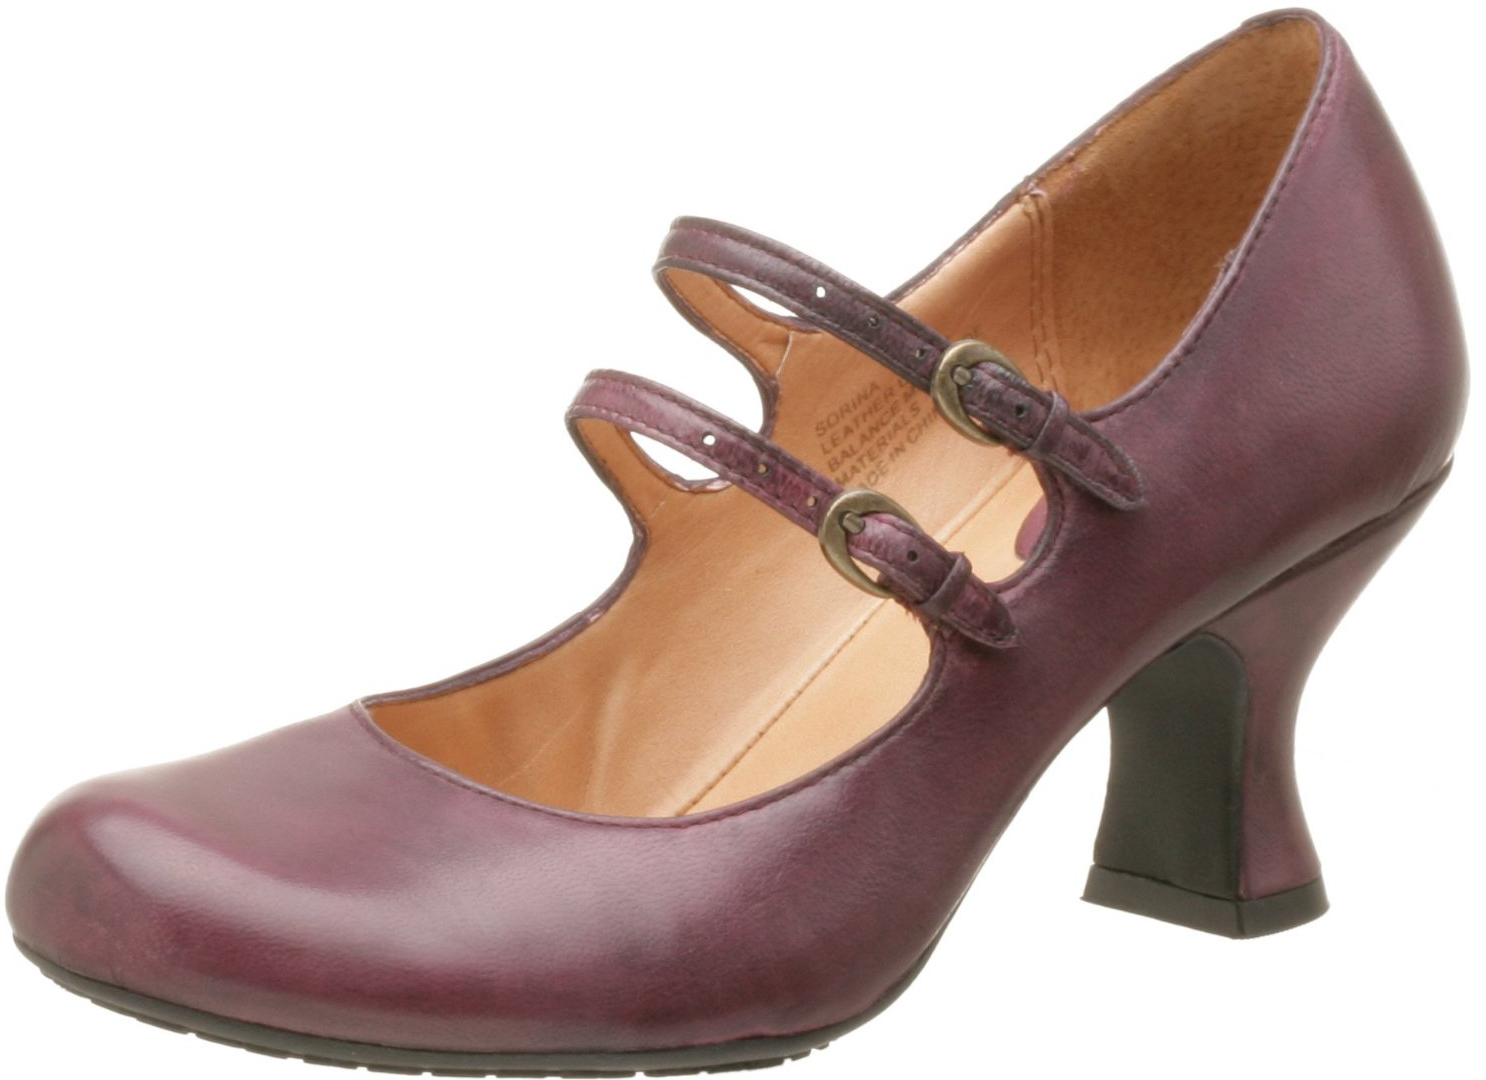 Naturalizer Shoes On Sale